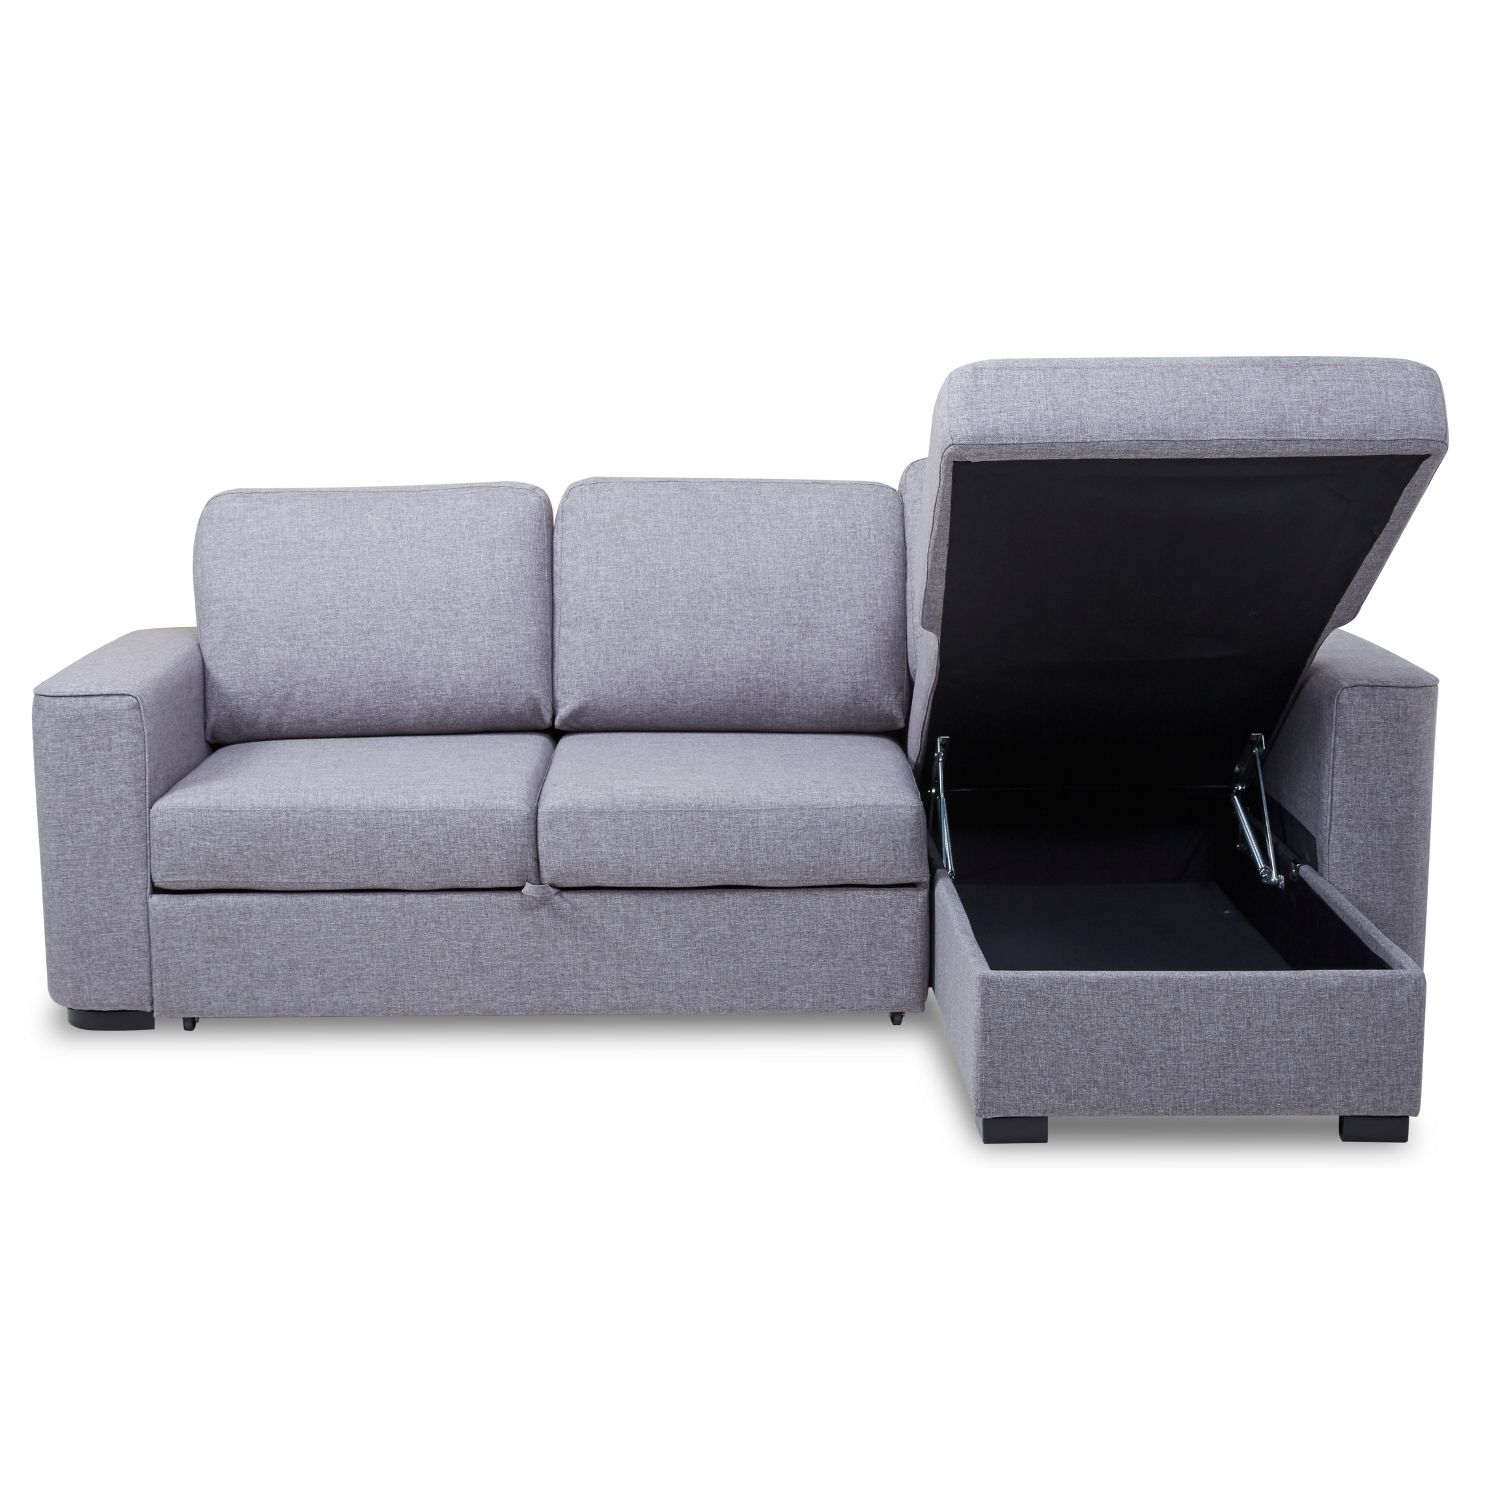 Ronny Fabric Corner Sofa Bed With Storage Next Day Delivery